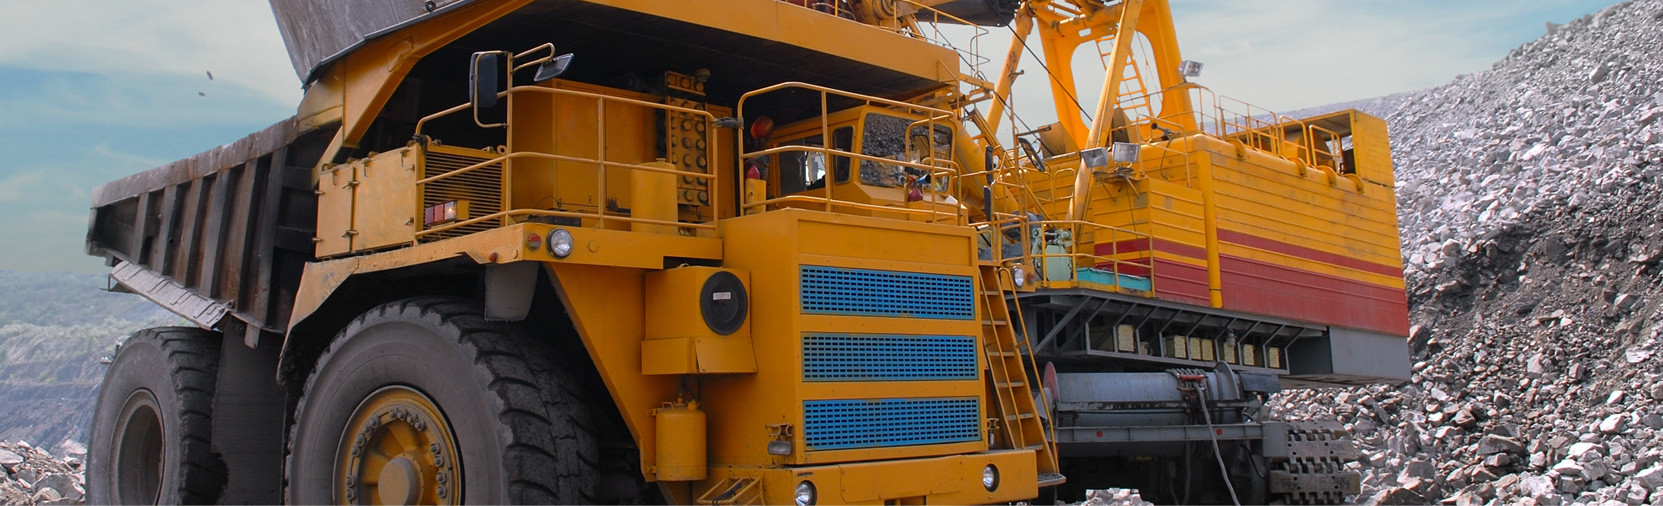 Trade Assistants Mining FIFO Fitters Maintenance QLD-iMINCO.net Mining Information